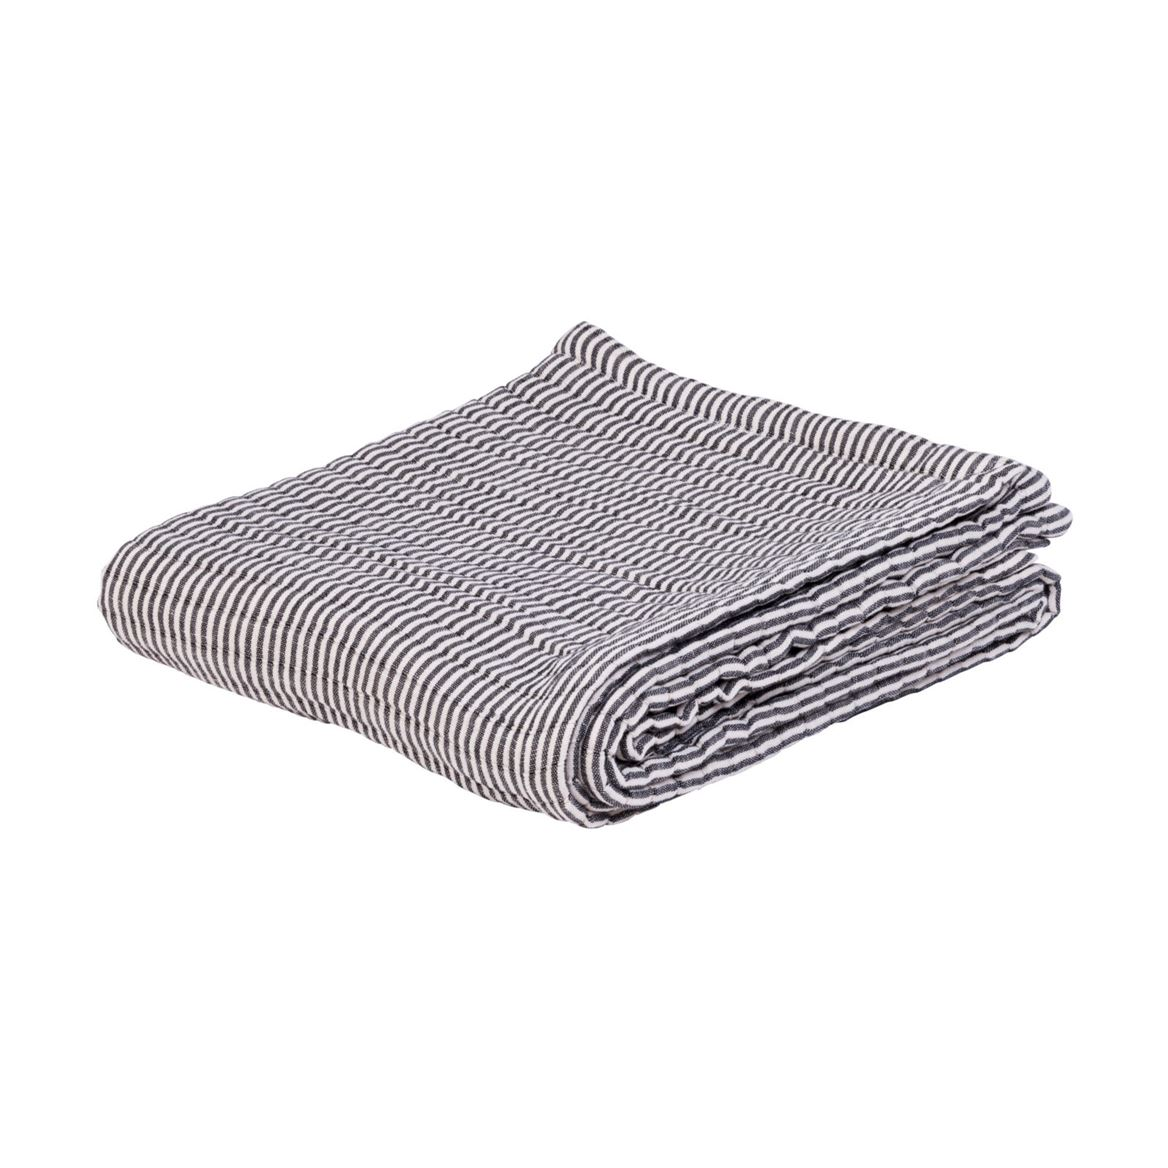 MARIN Plaid blanc, bleu Larg. 125 x Long. 150 cm_marin-plaid-blanc,-bleu-larg--125-x-long--150-cm